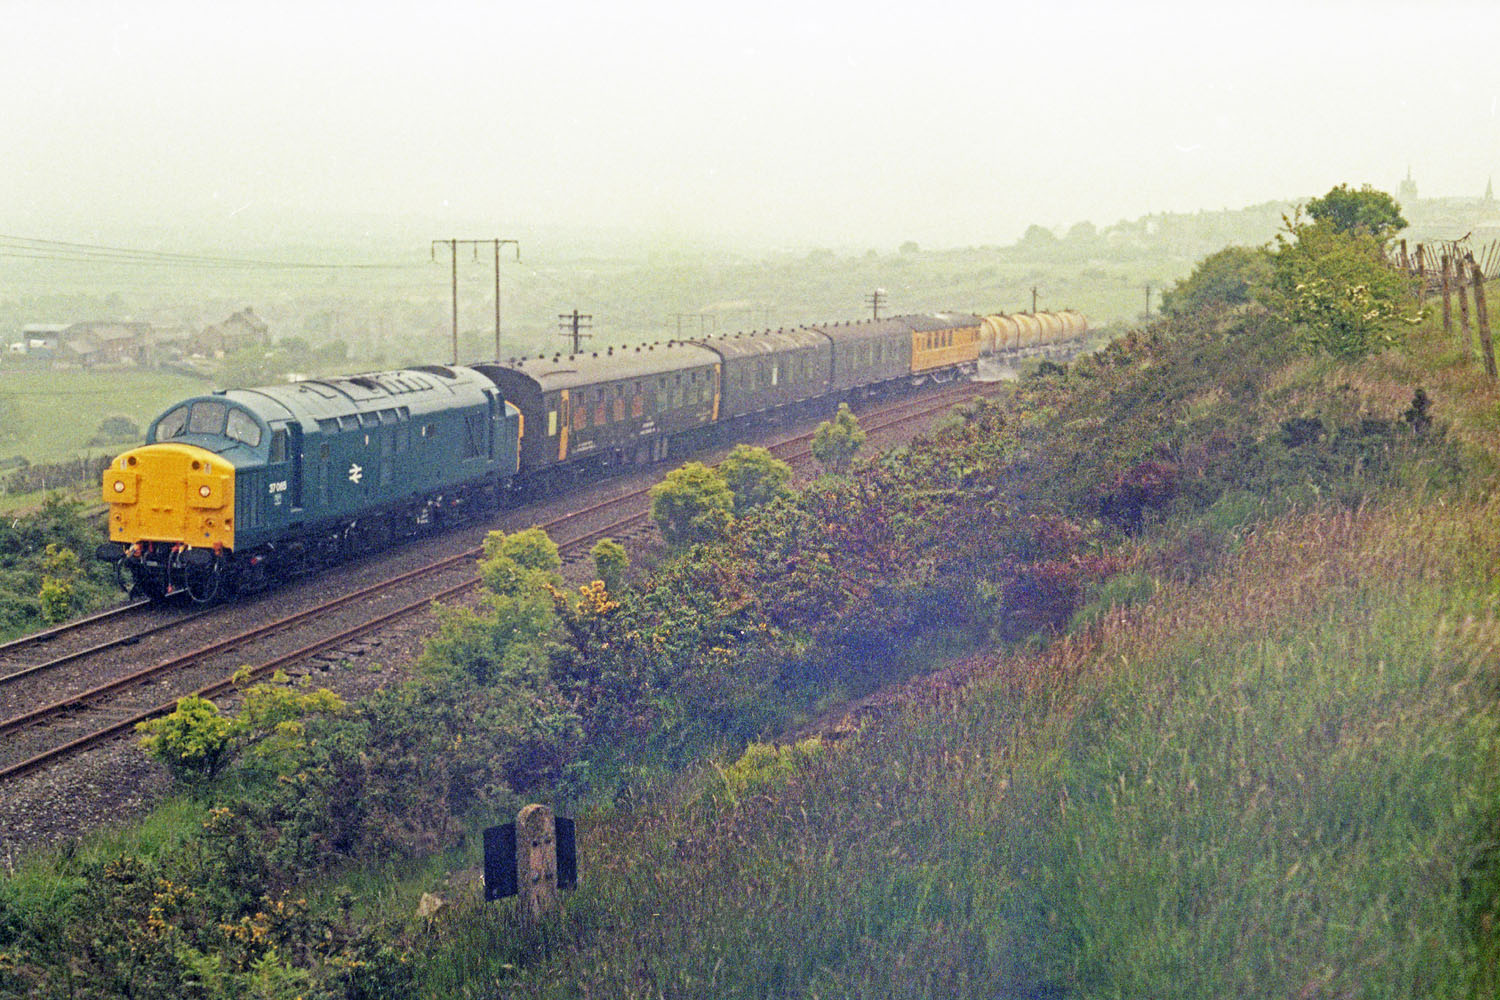 Oxhill 21-6-83. 37065 -weedkilling train